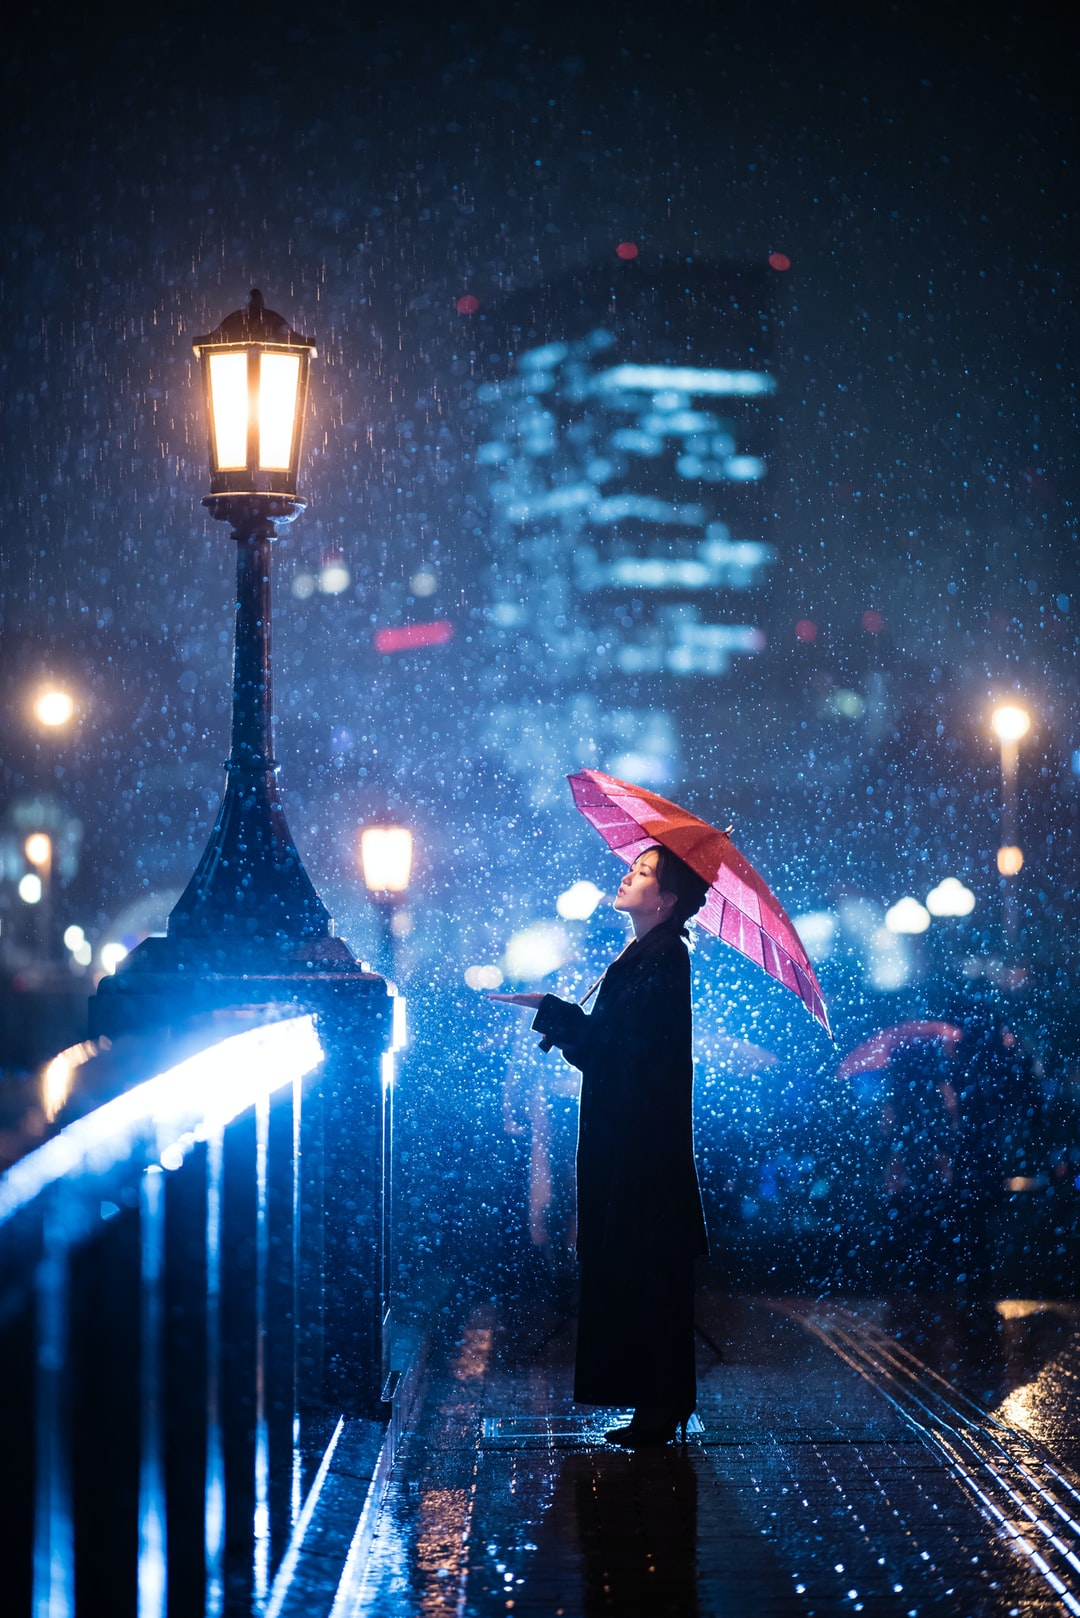 Rainy Winter Photo By Alex J At Alexjapan On Unsplash